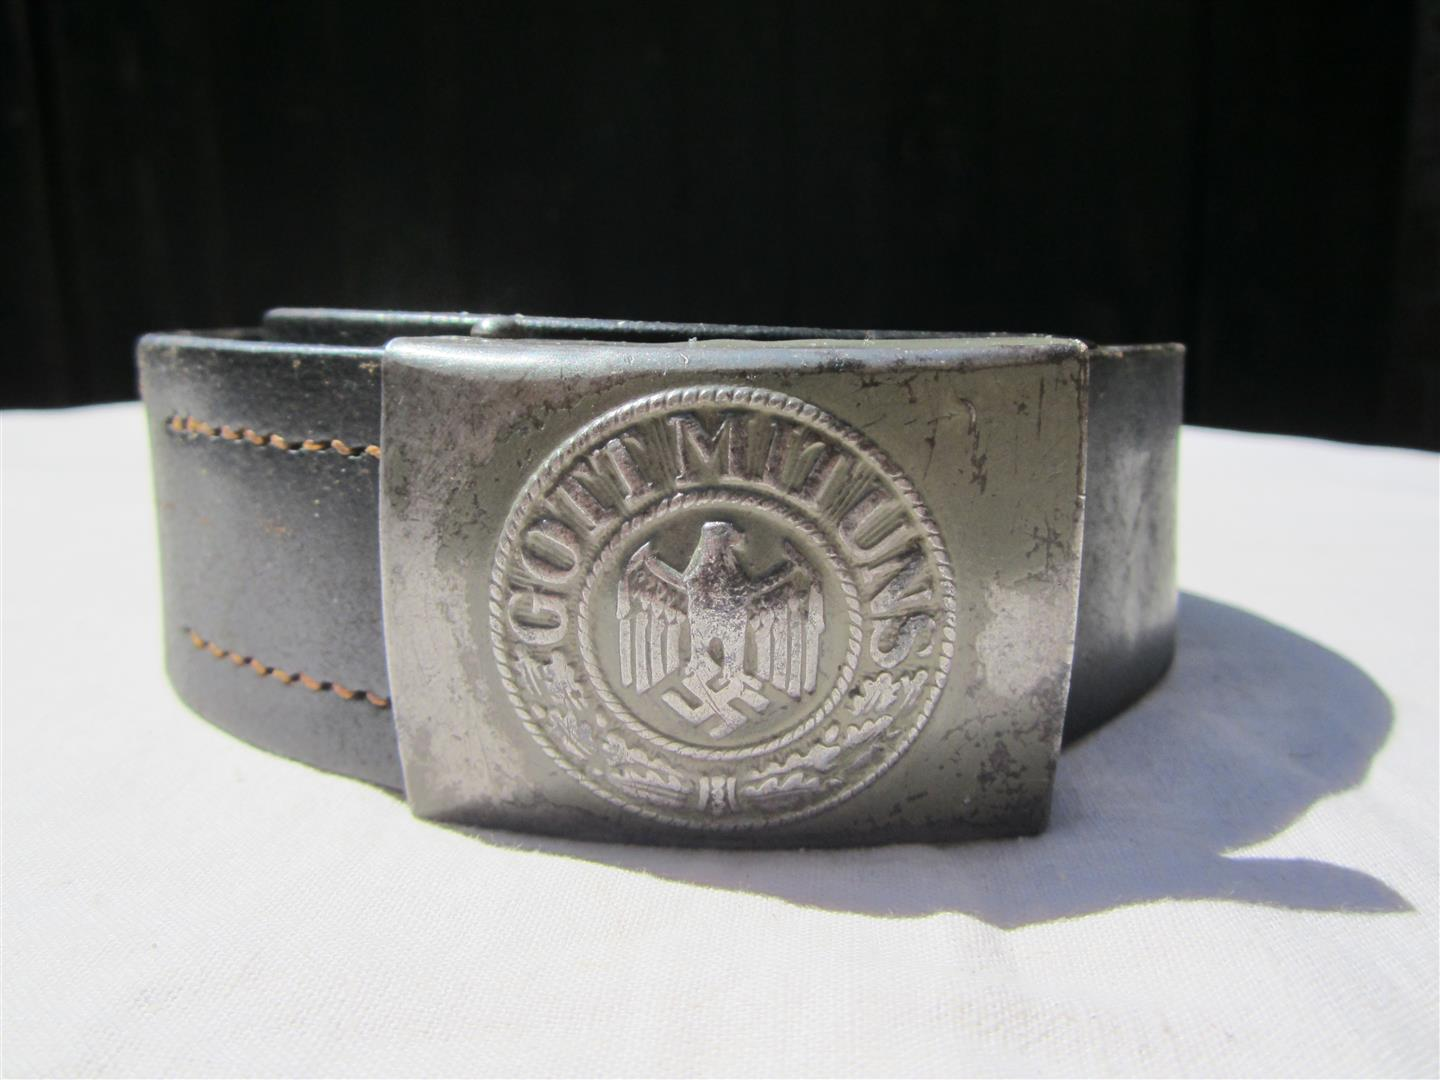 WW2 WH Steel Belt & Buckle